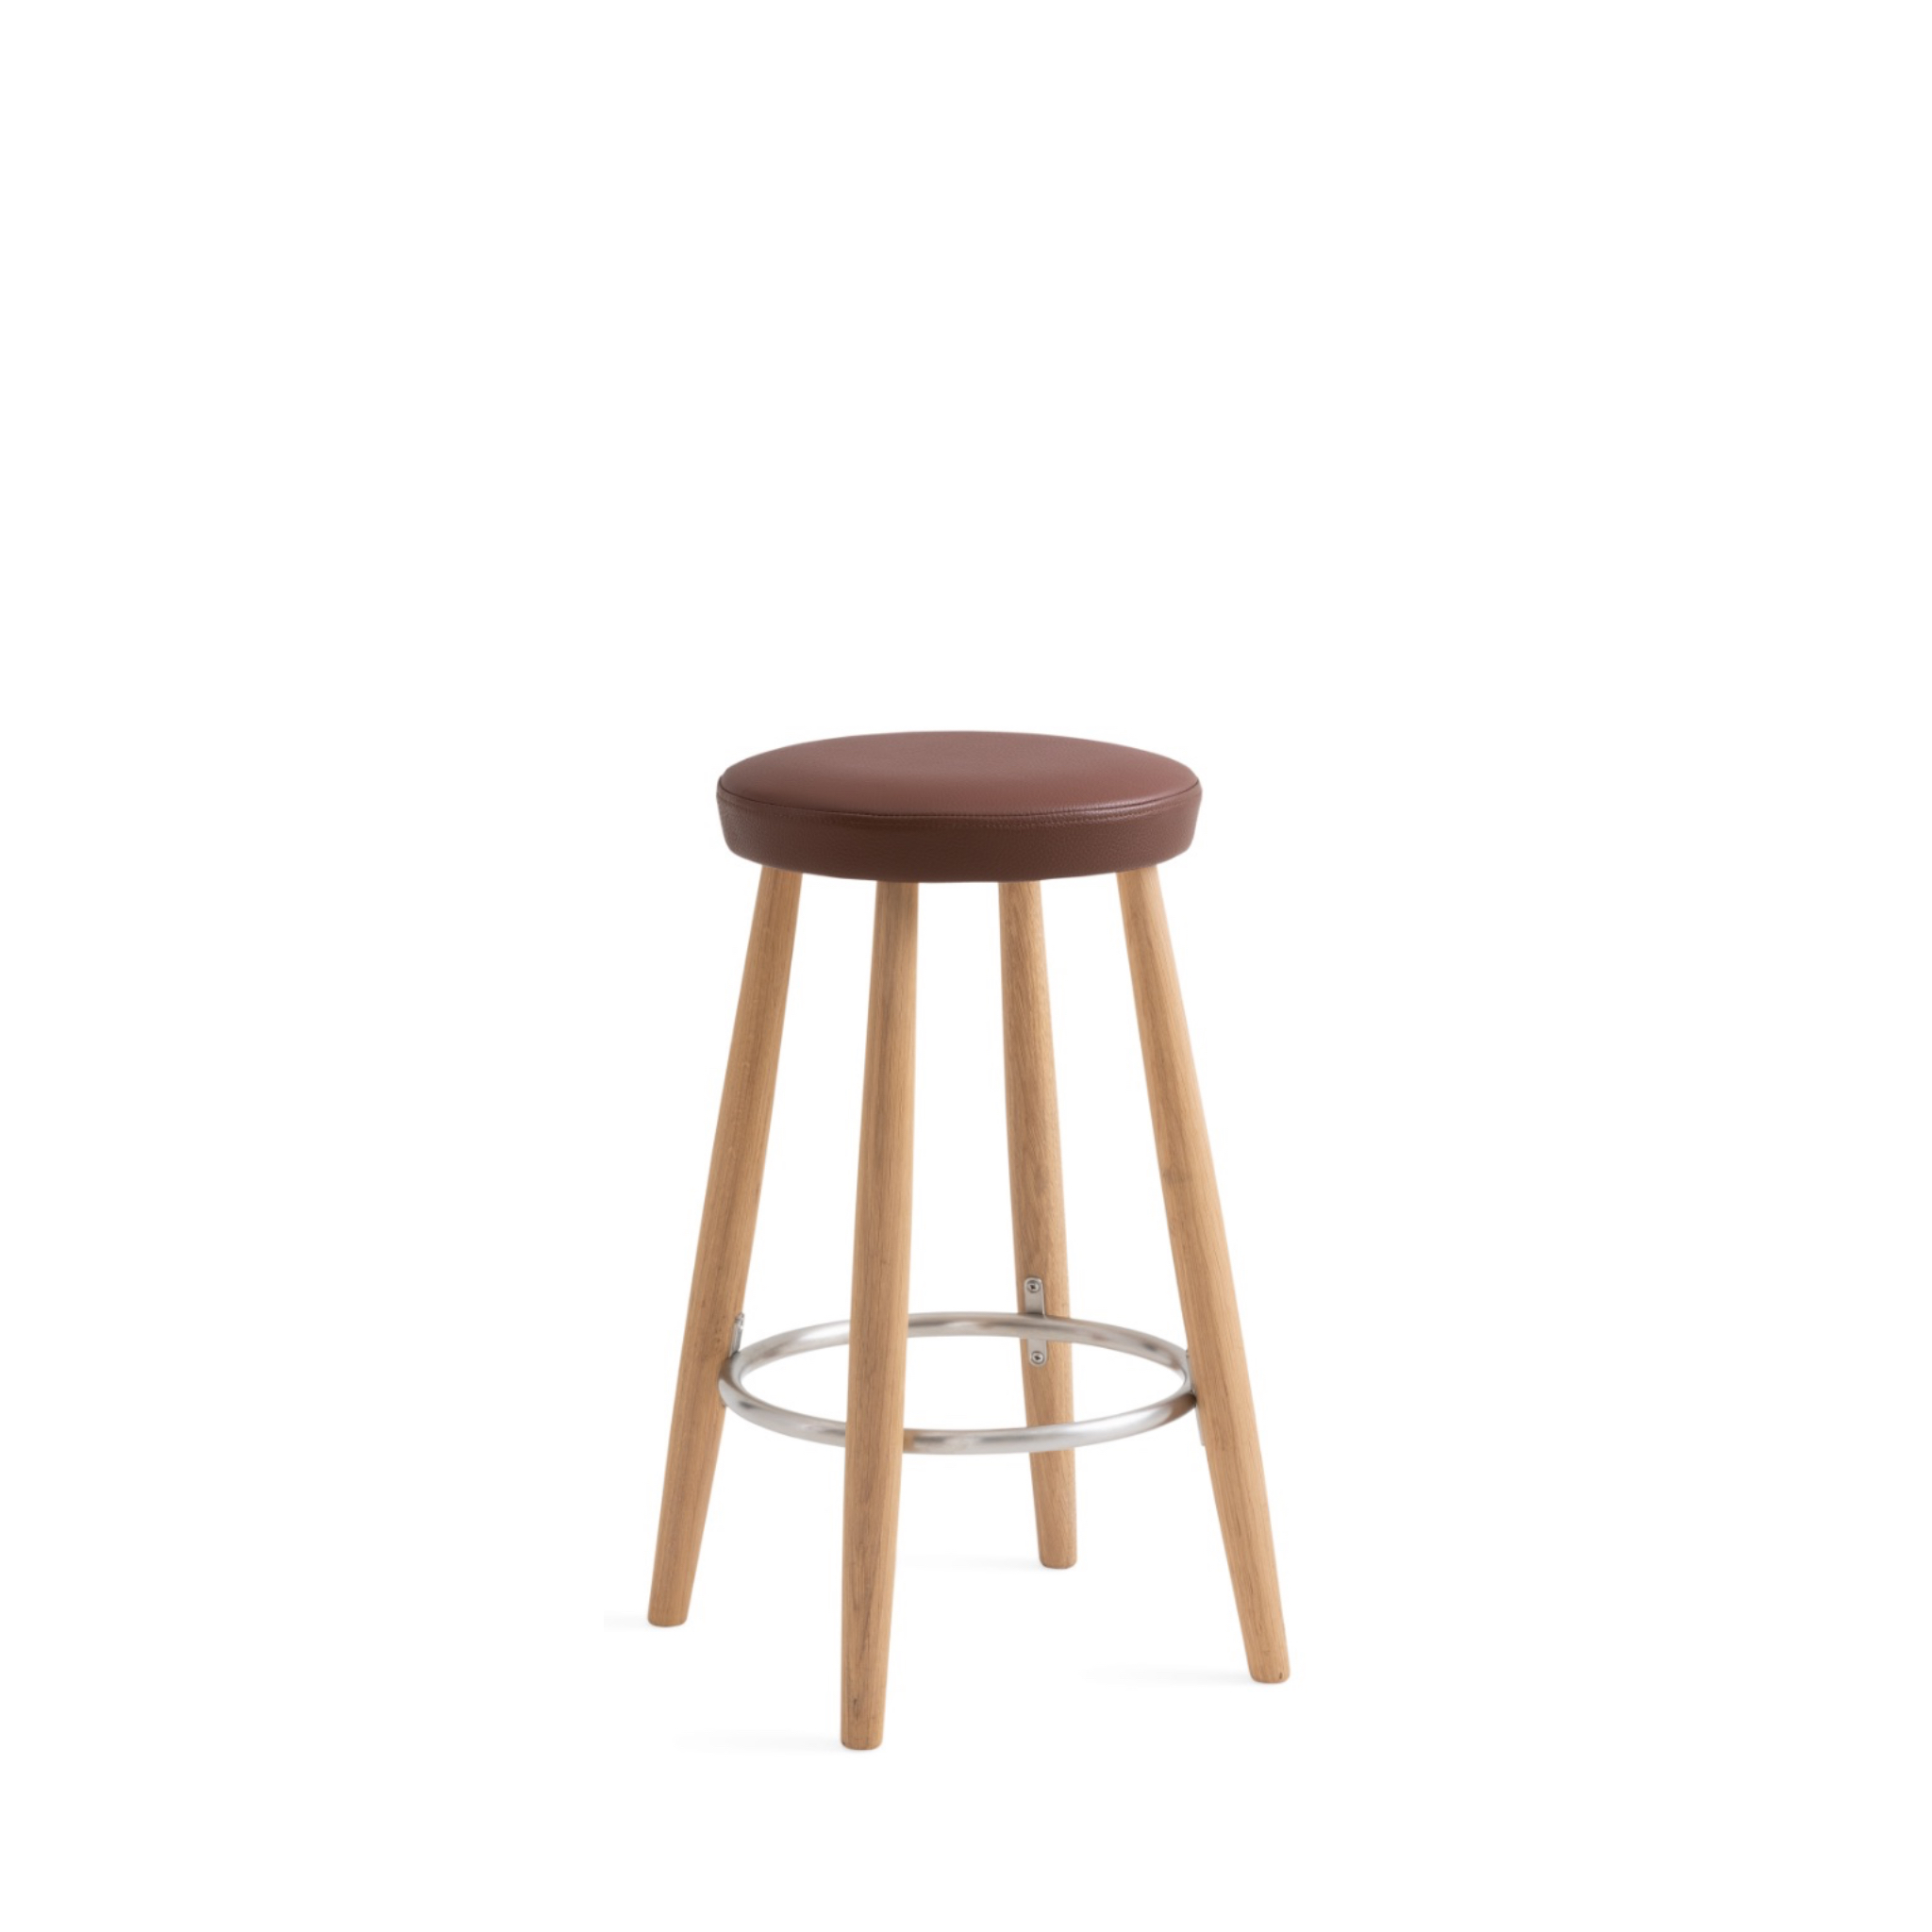 Round top office stool with brown leather upholstery and wooden legs